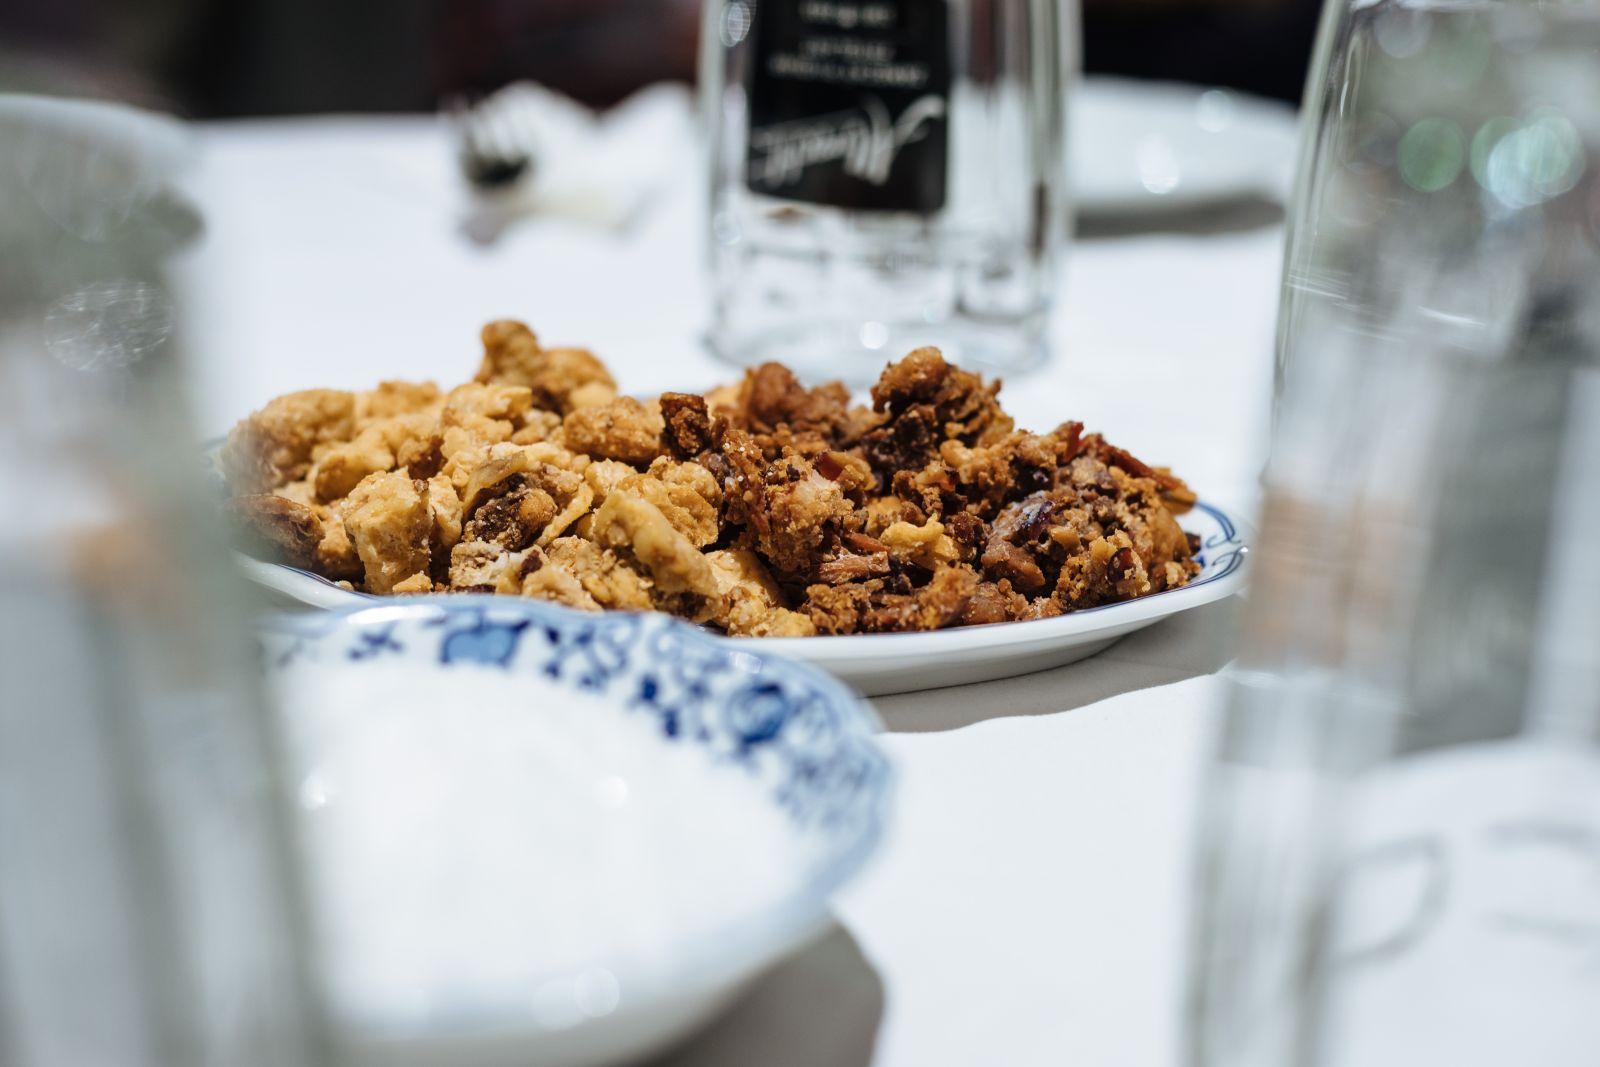 Pork scratchings will be waiting for you on arrival but be careful, don't get too carried away with them..